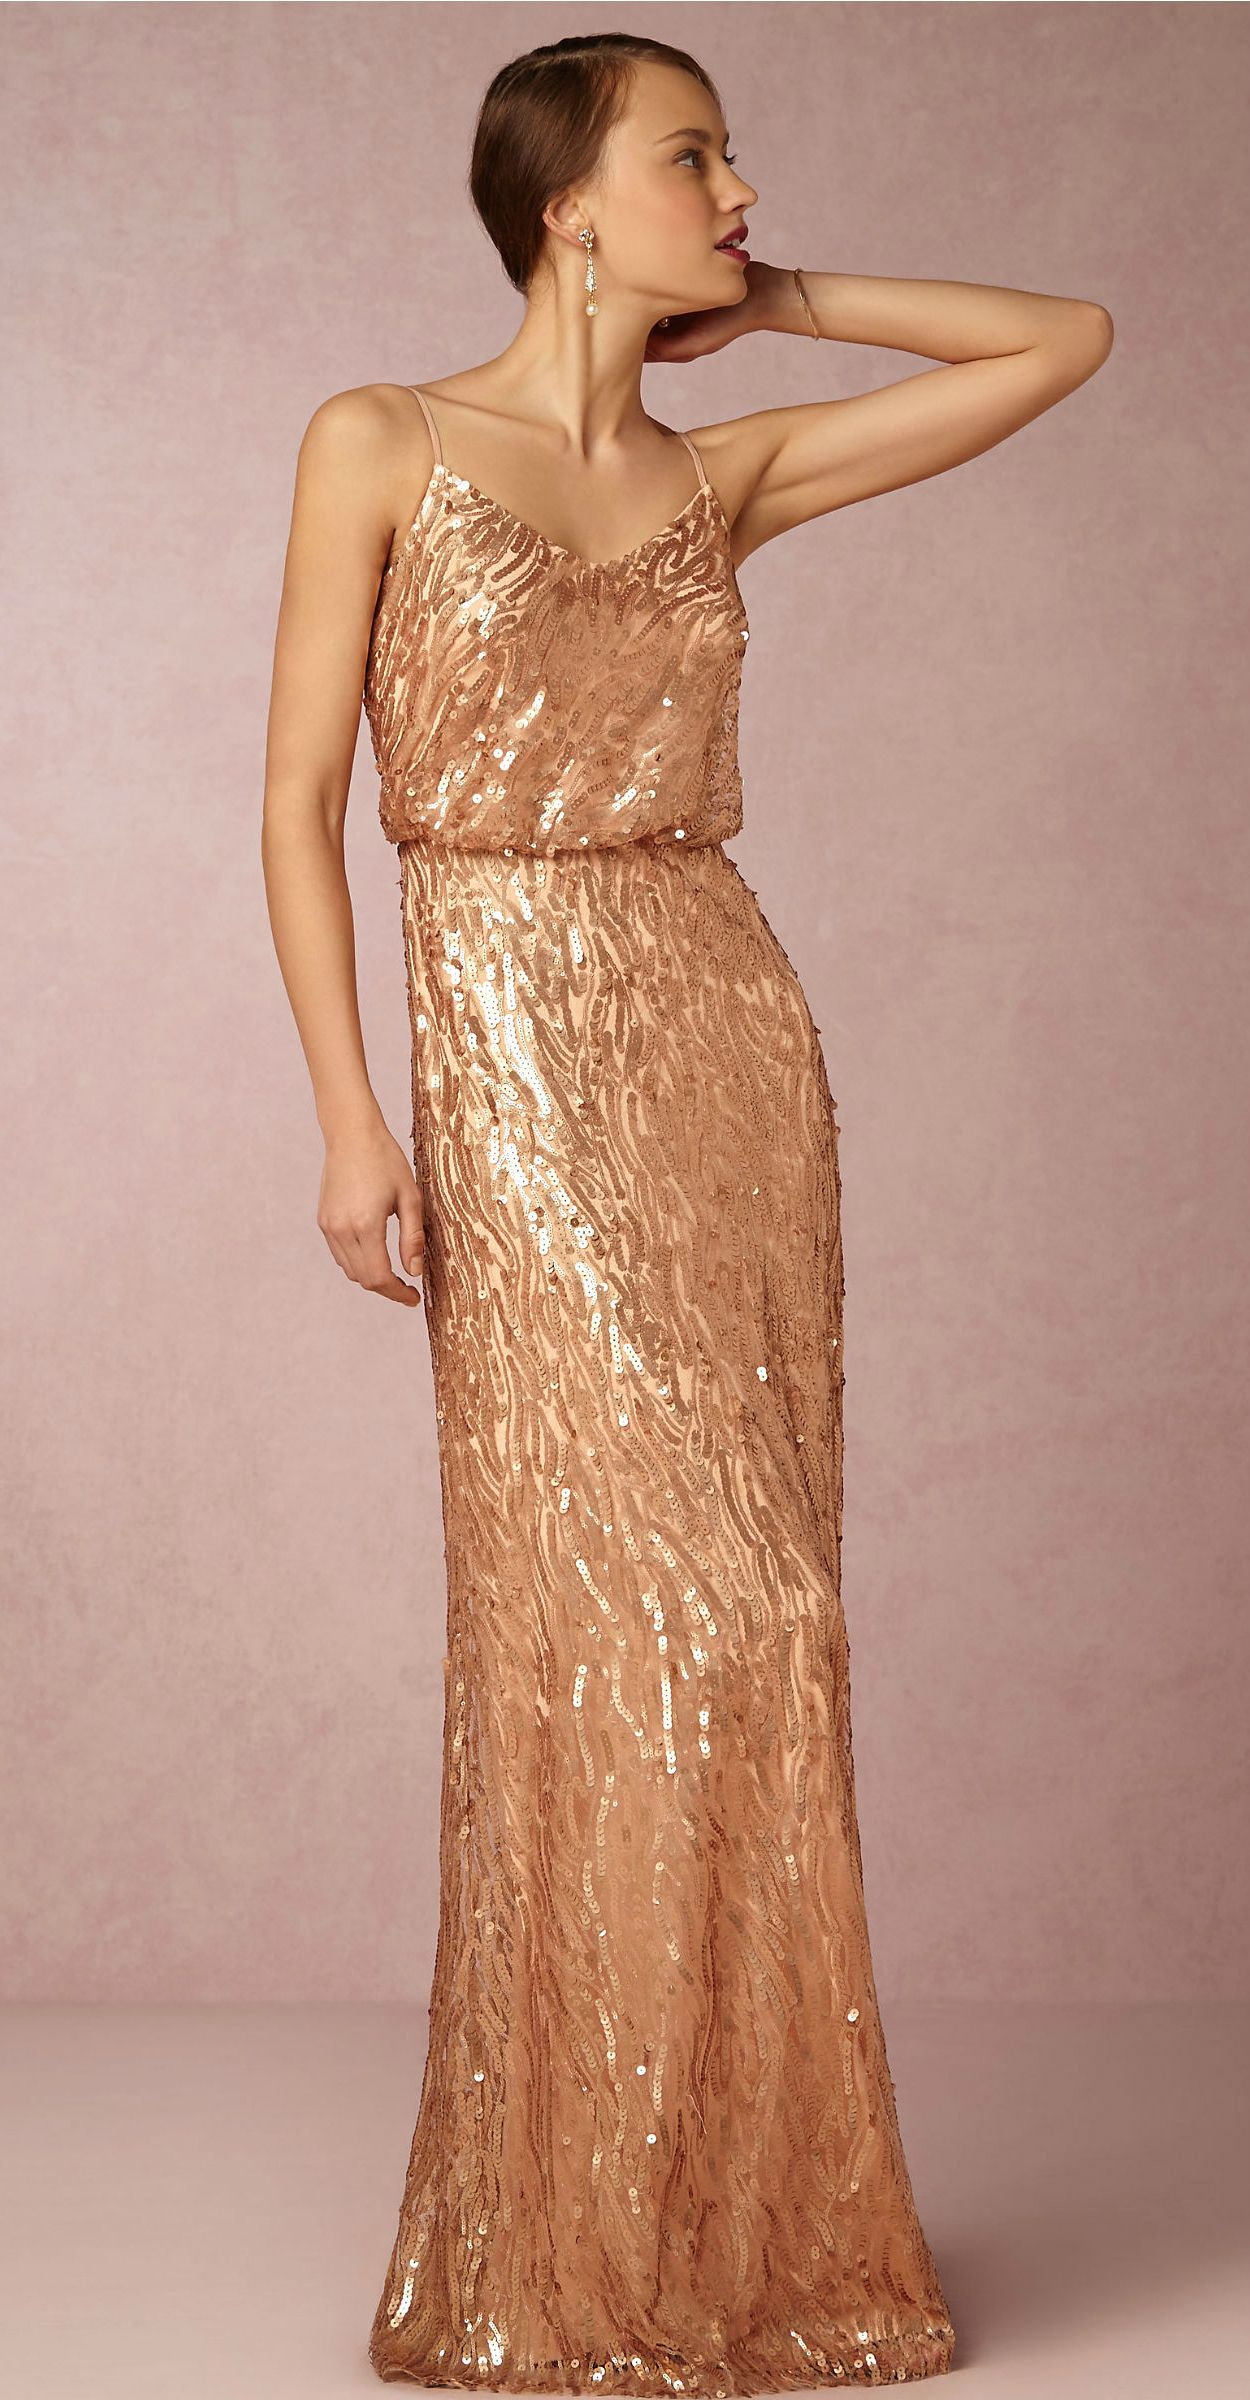 25bbb9d04c9 Sequined bridesmaid dress in Rose Gold from BHLDN  Courtney  Dress